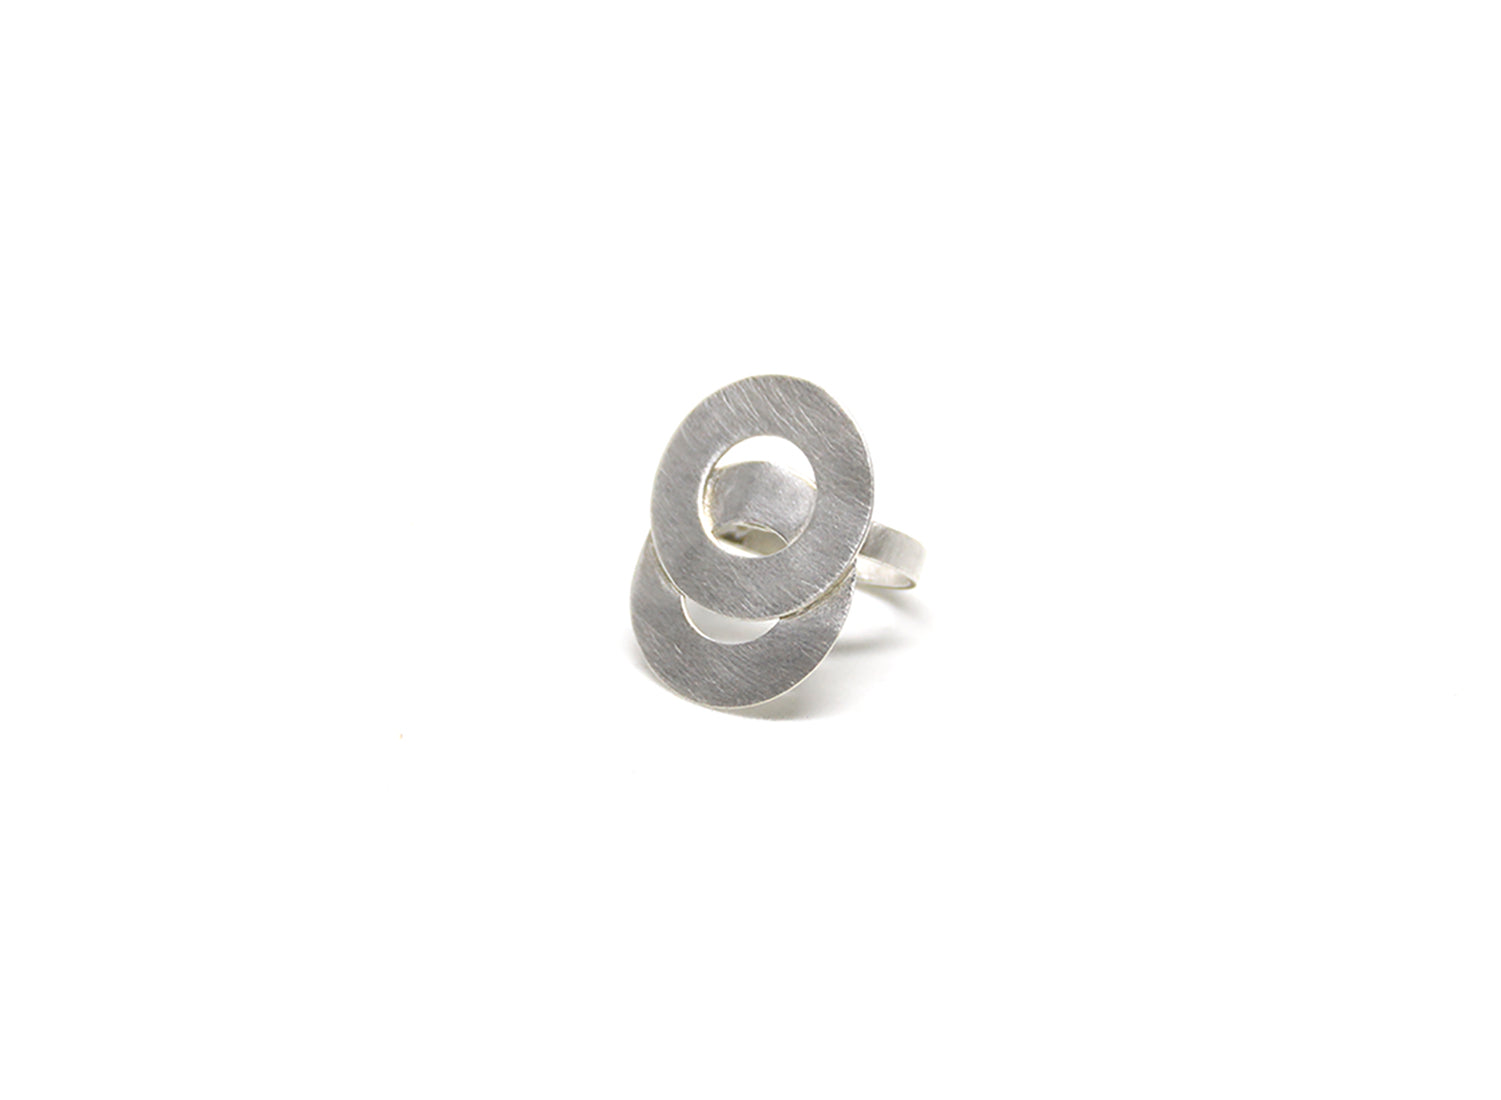 llayers jewelry ring loop silver - bague llayers  cercles entrelacés minimale